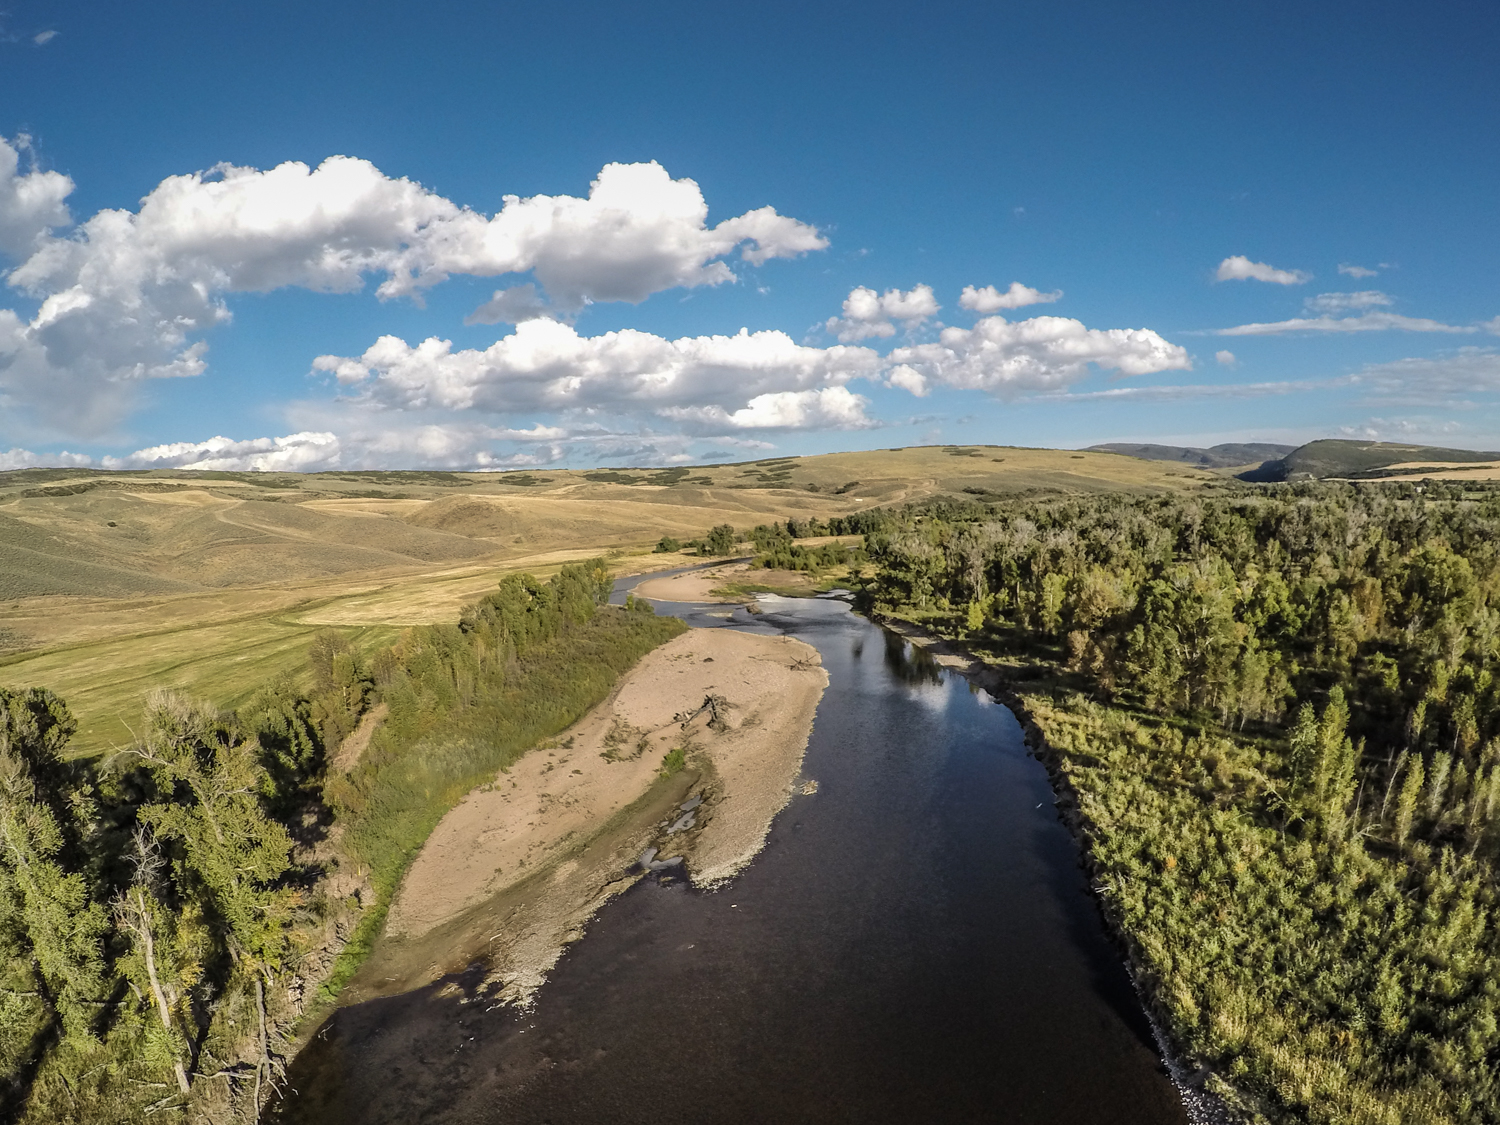 (A Tale of two Yampas: on the left side of this aerial of the Yampa River you can see the effects of allowing cattle to graze all the way down to the river. On the right, you can see the proliferation of species that has resulted from a century of conservation. The differences in vegetation interact in a dynamic manner with the river. )